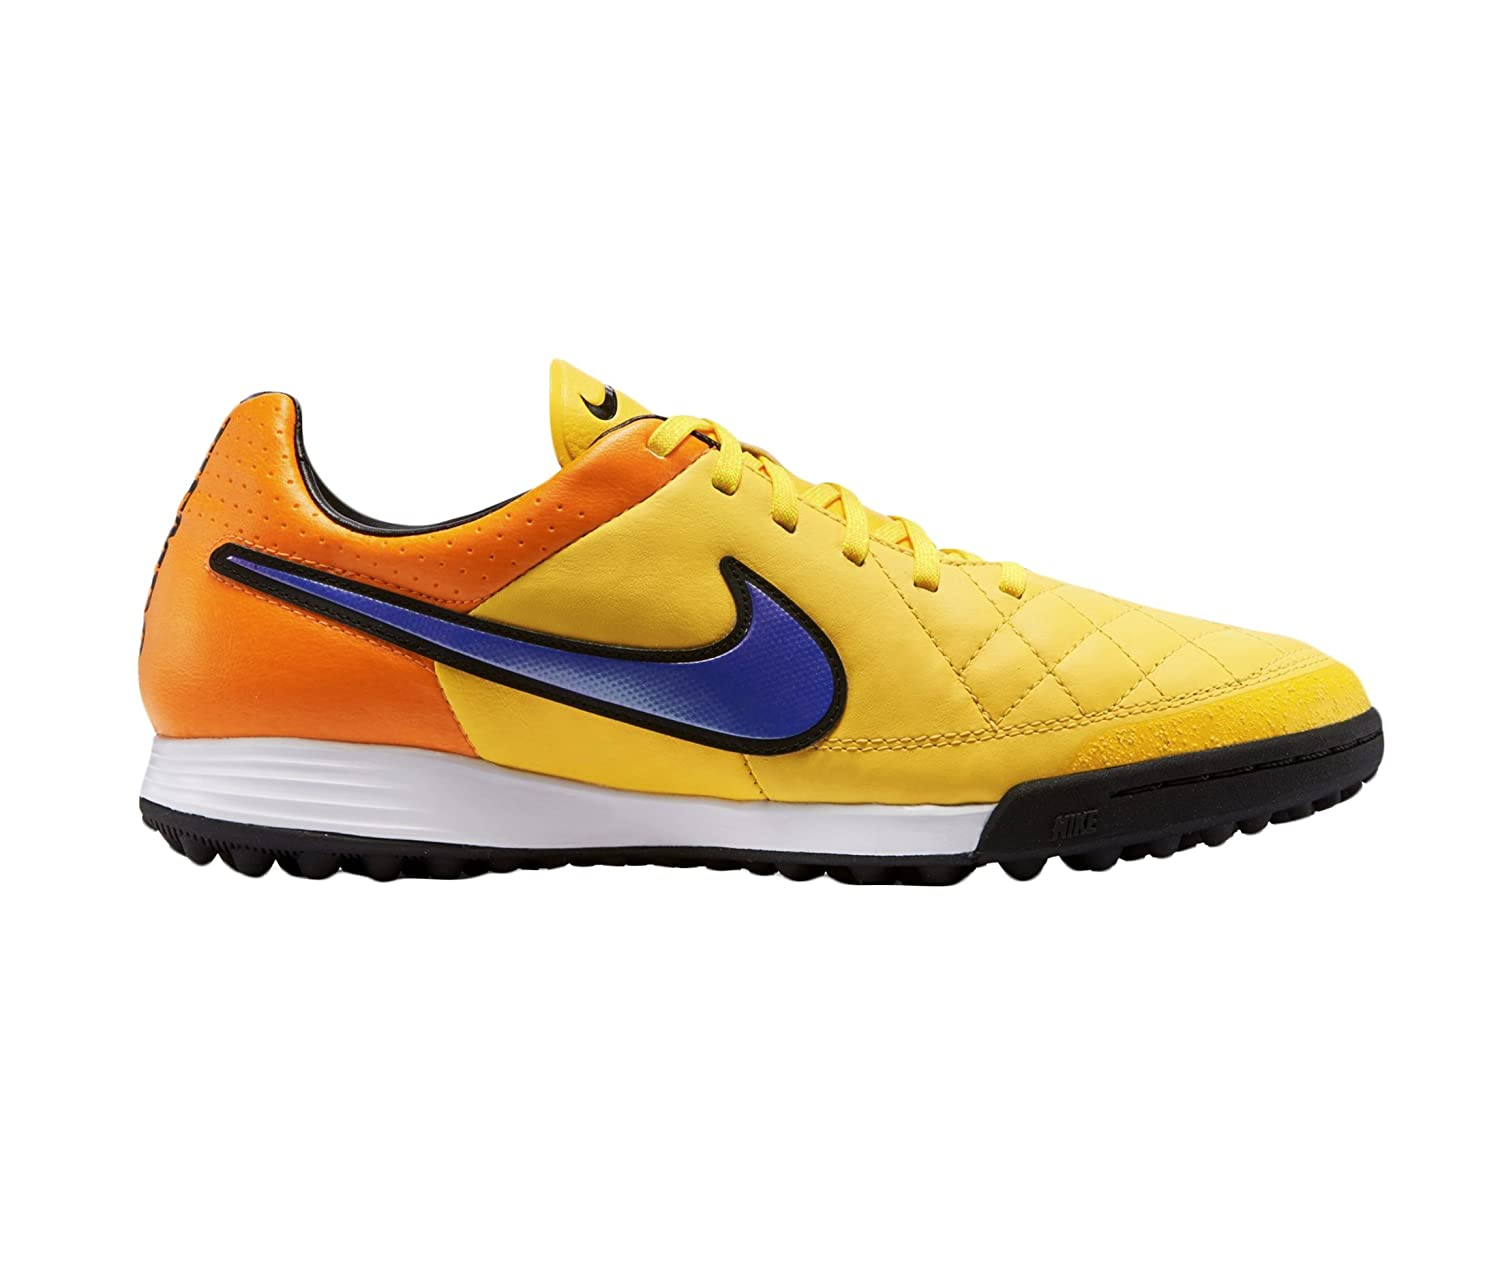 71dfc109f85781 Nike Mens Tiempo Legacy Astro Turf Trainers Sports Football Shoes Footwear  Orange Volt UK 11 (46)  Amazon.co.uk  Sports   Outdoors